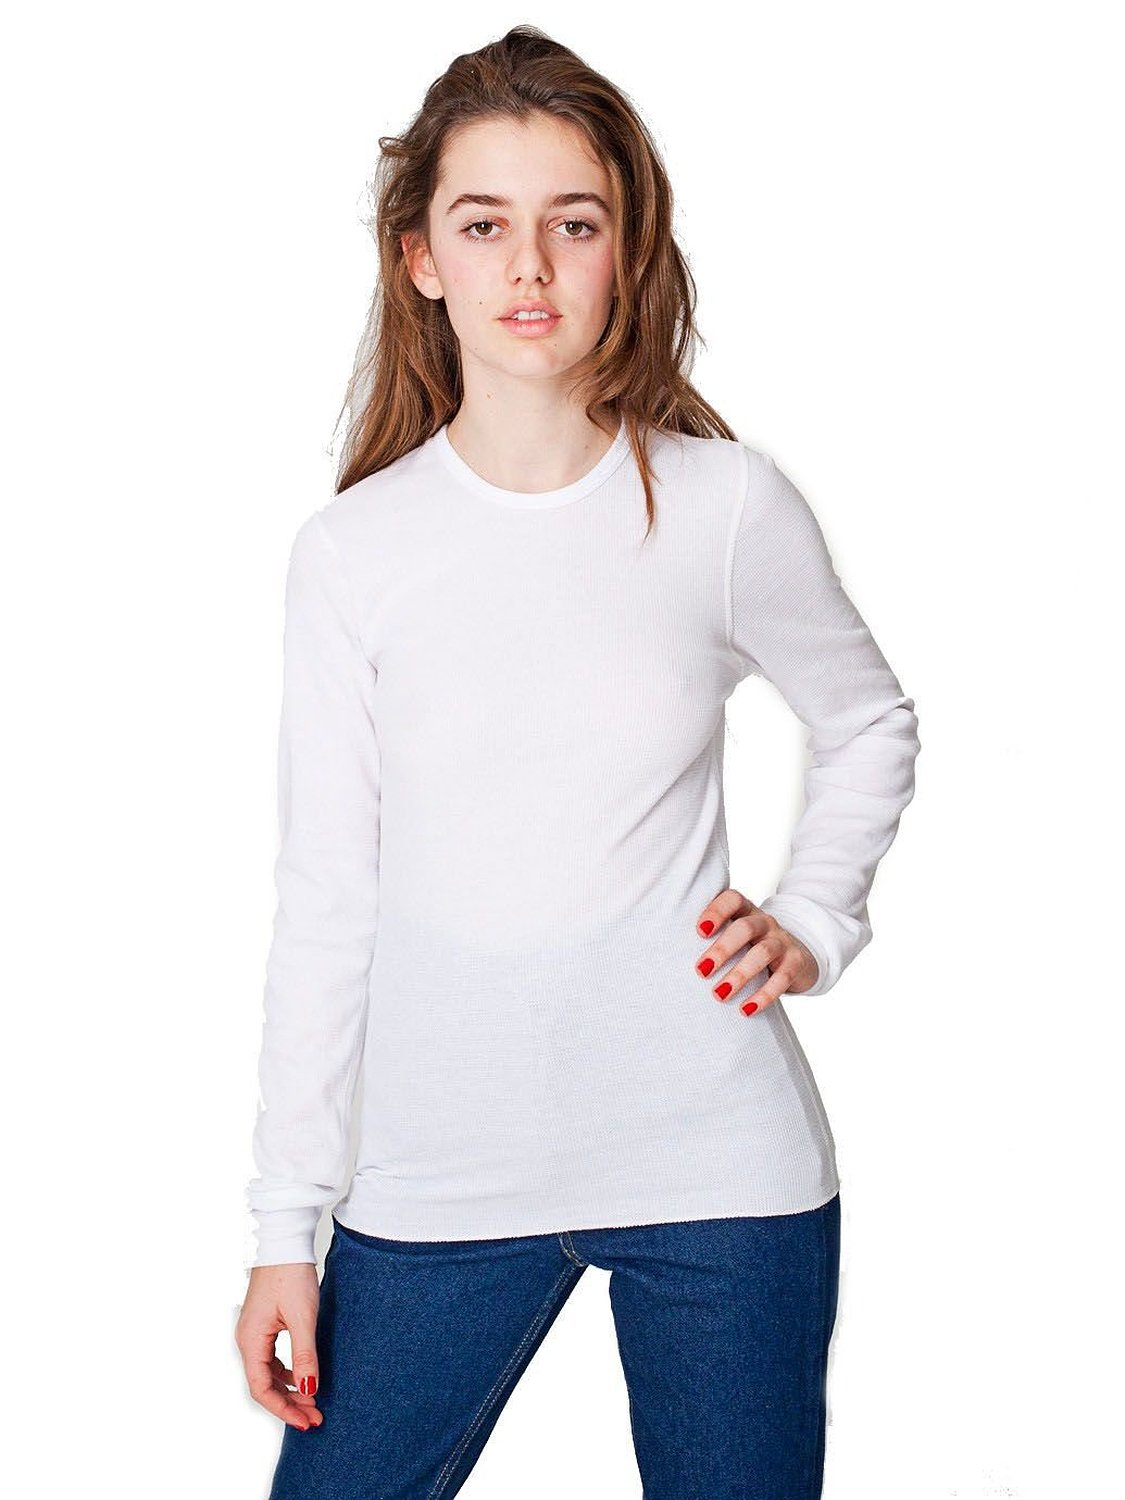 American apparel women 39 s thermal long sleeve t for White thermal t shirt